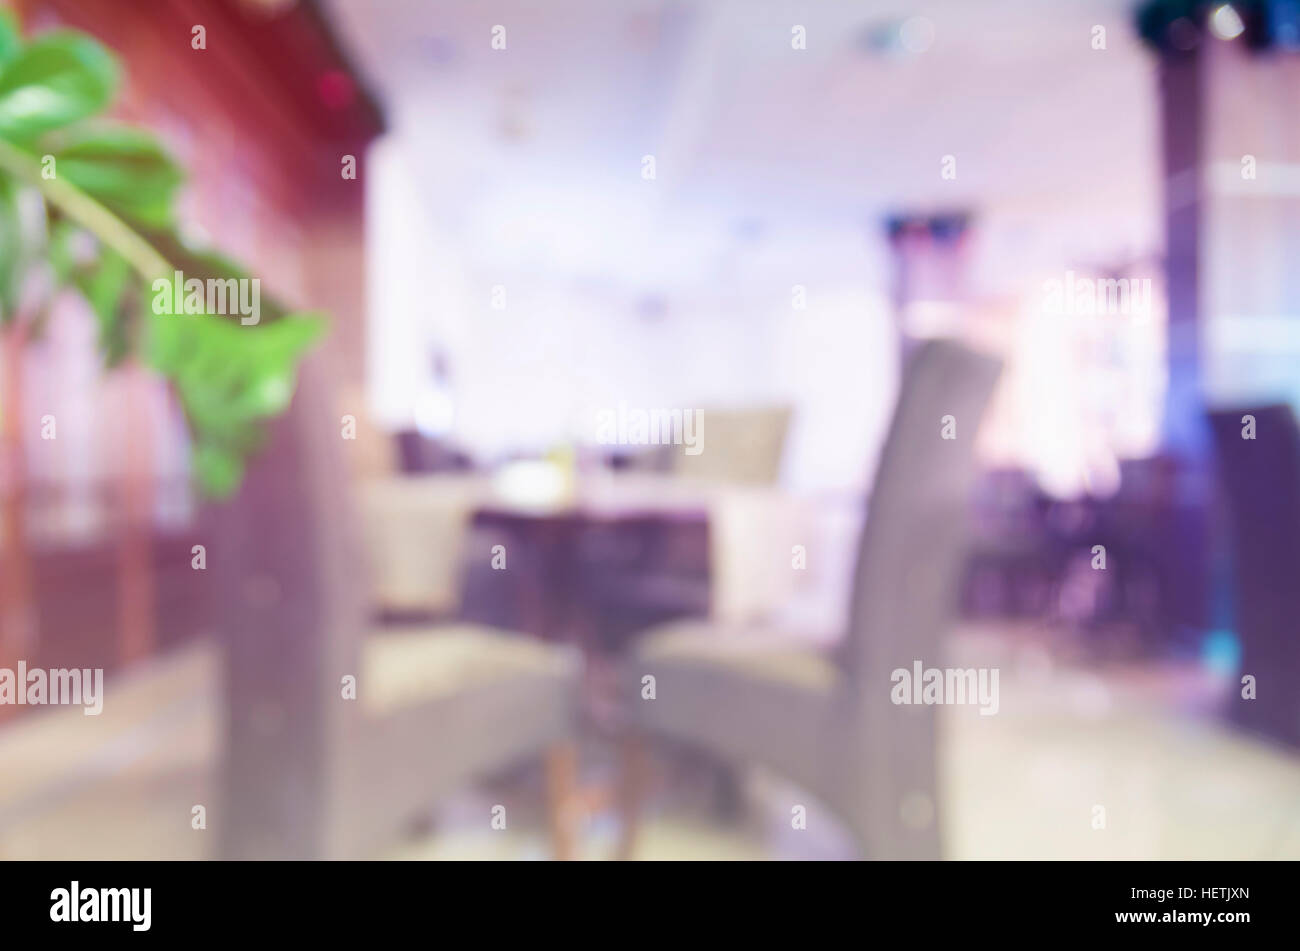 Unfocused image of empty restaurant seats with colorful lighting. - Stock Image